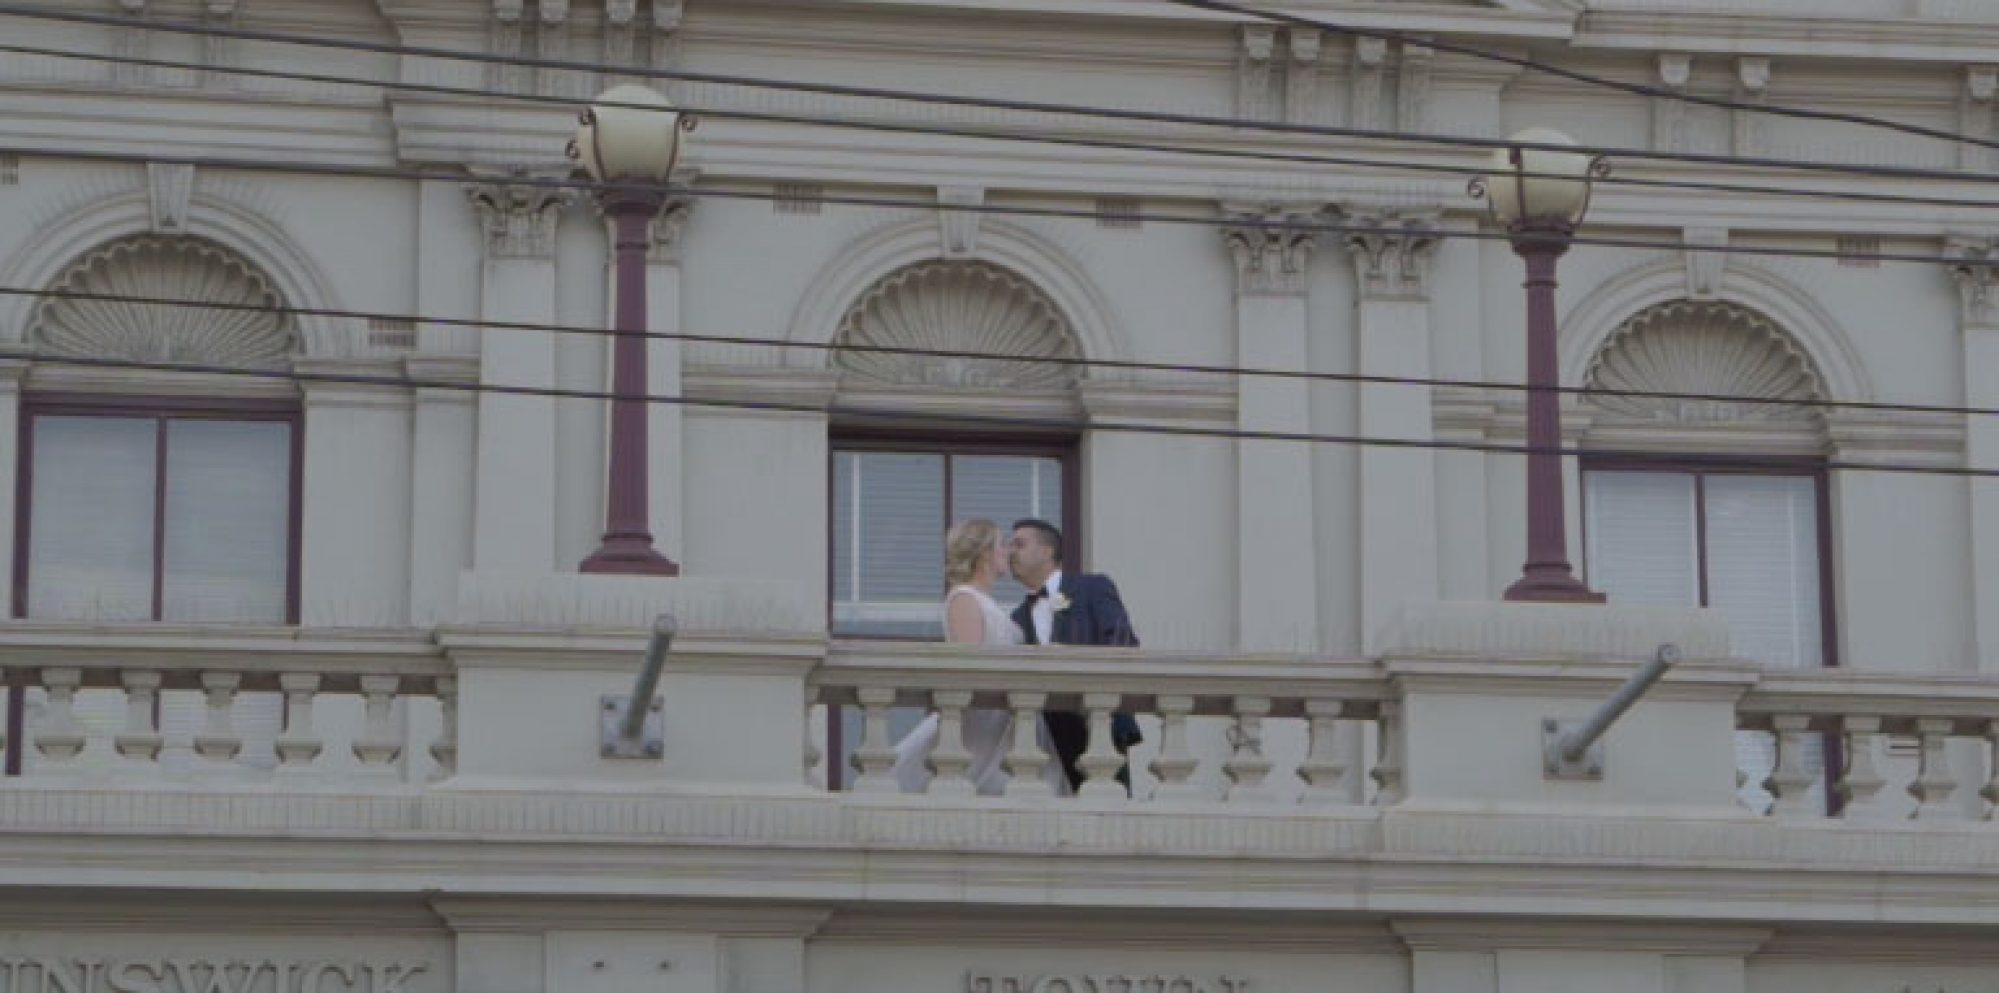 Genevieve & bill @ brunswick town hall wedding video